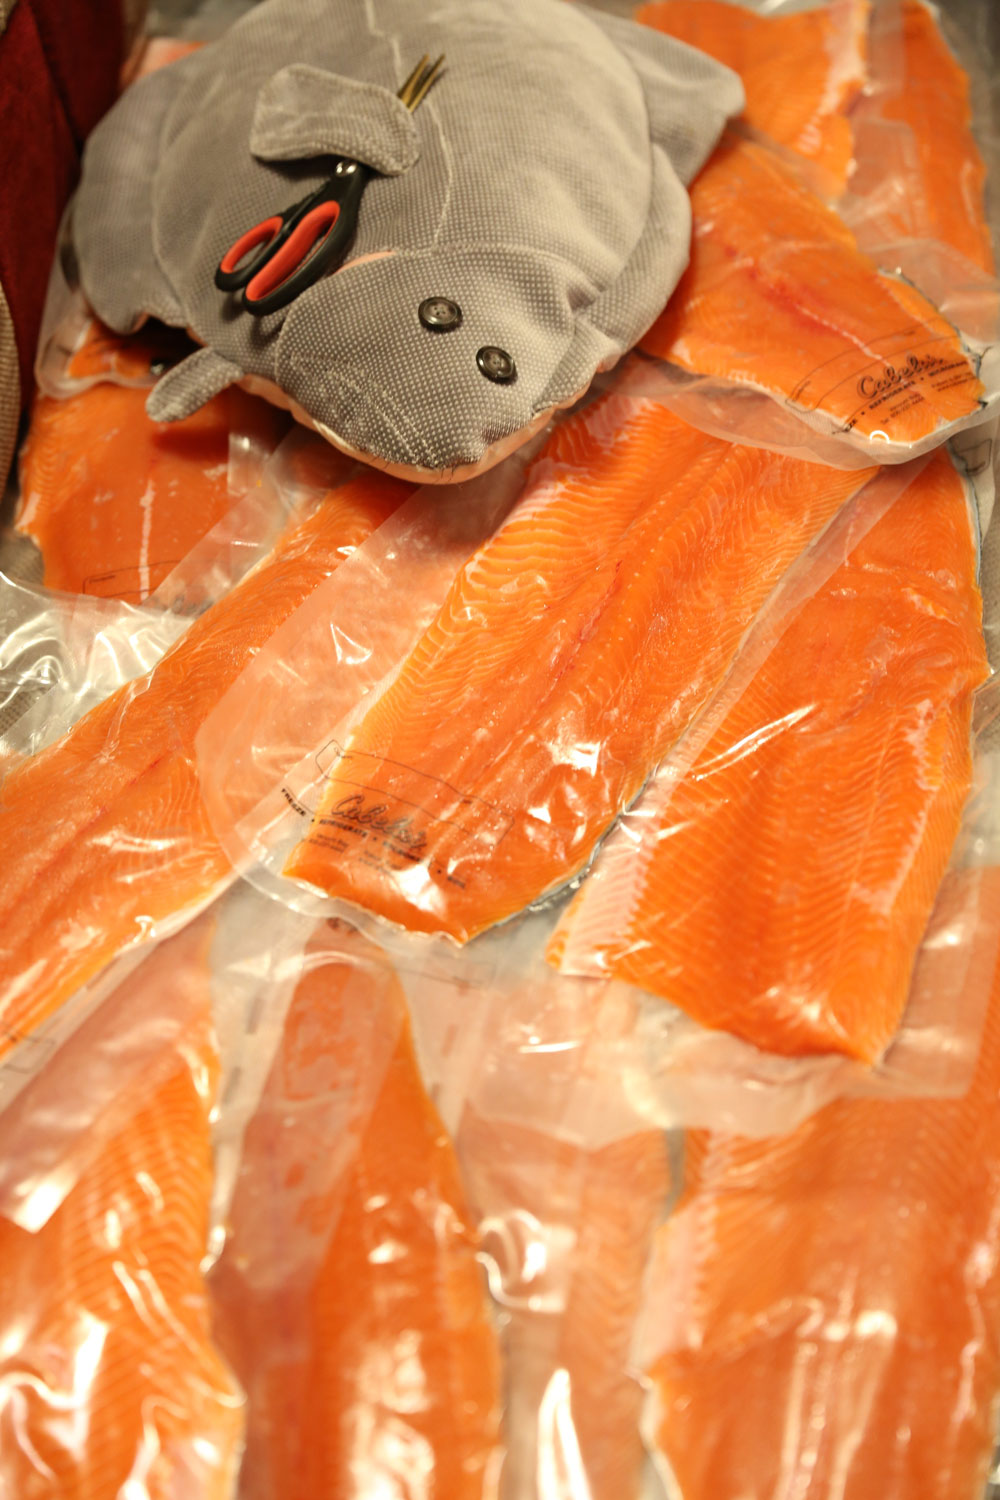 Halibut with scissors to open the vacuum packed salmon